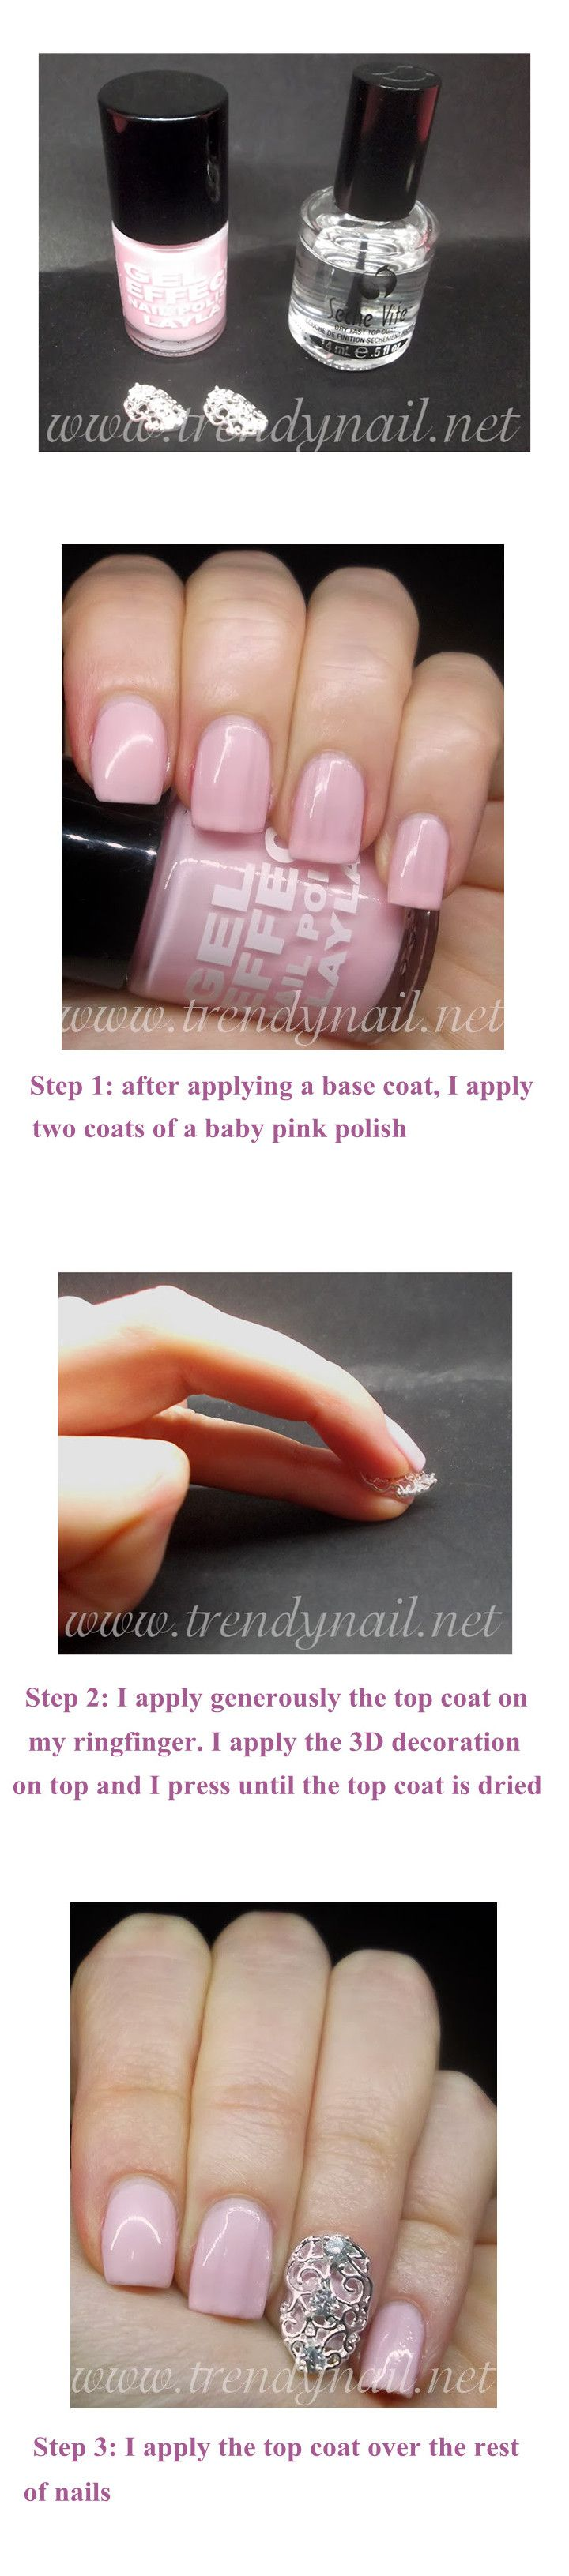 $1.58 2pcs Luxury Style Nail Crystal Embossed Metal 3D Nail Jewelry Decorations - BornPrettyStore.com